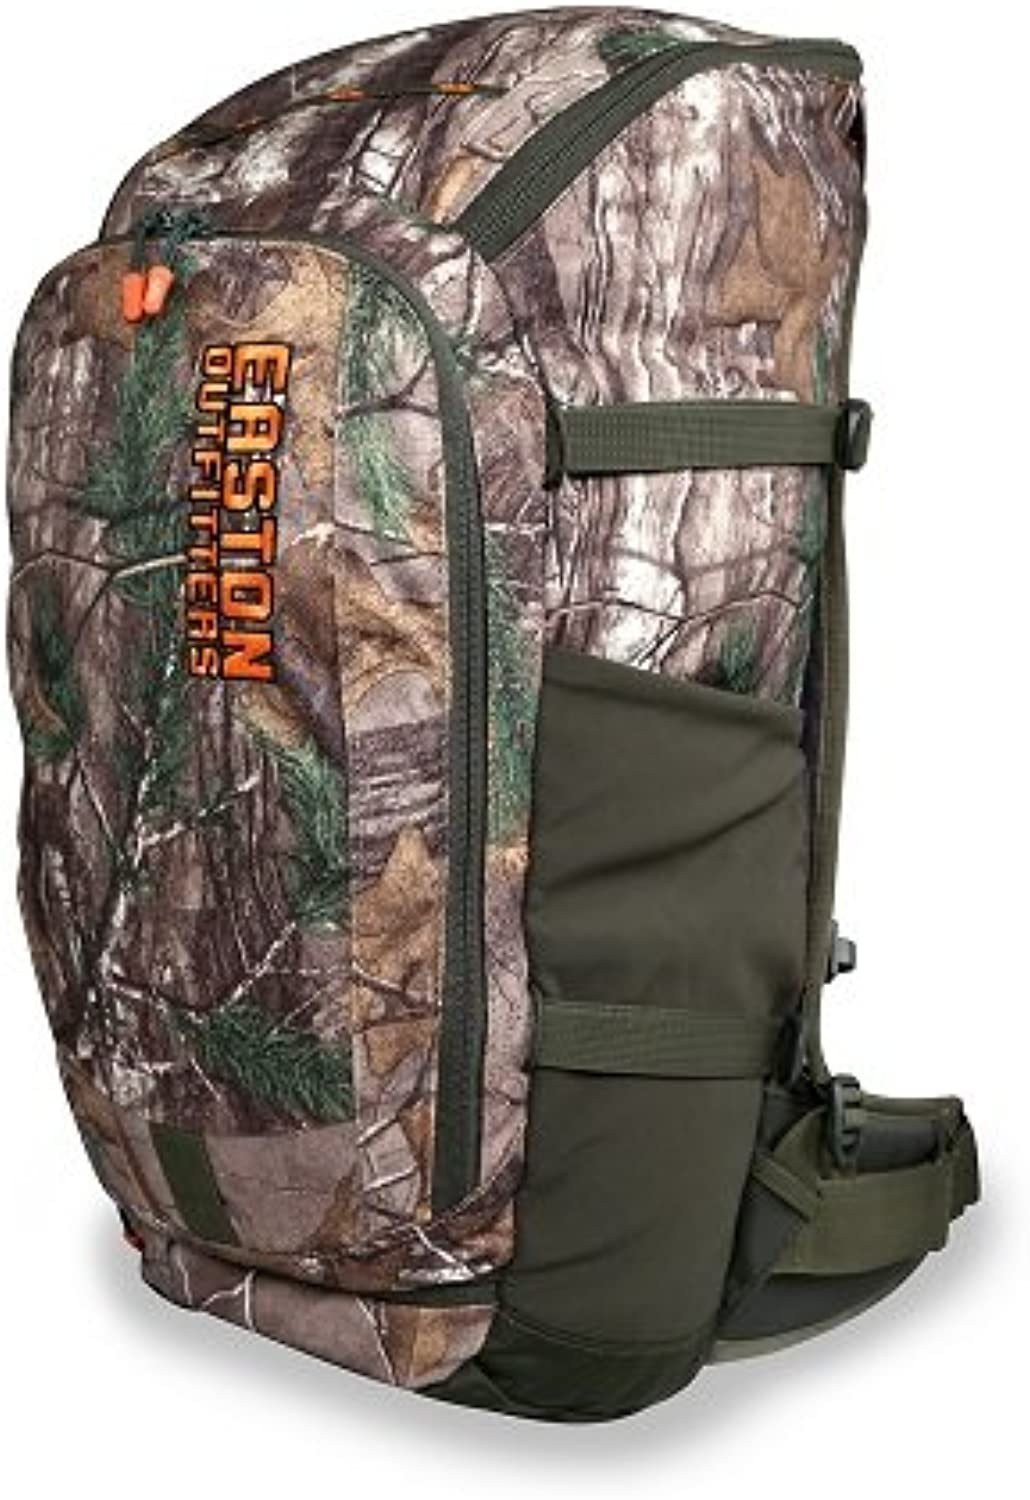 Easton Outfitters Bowhunter Realtree Xtra Backpack